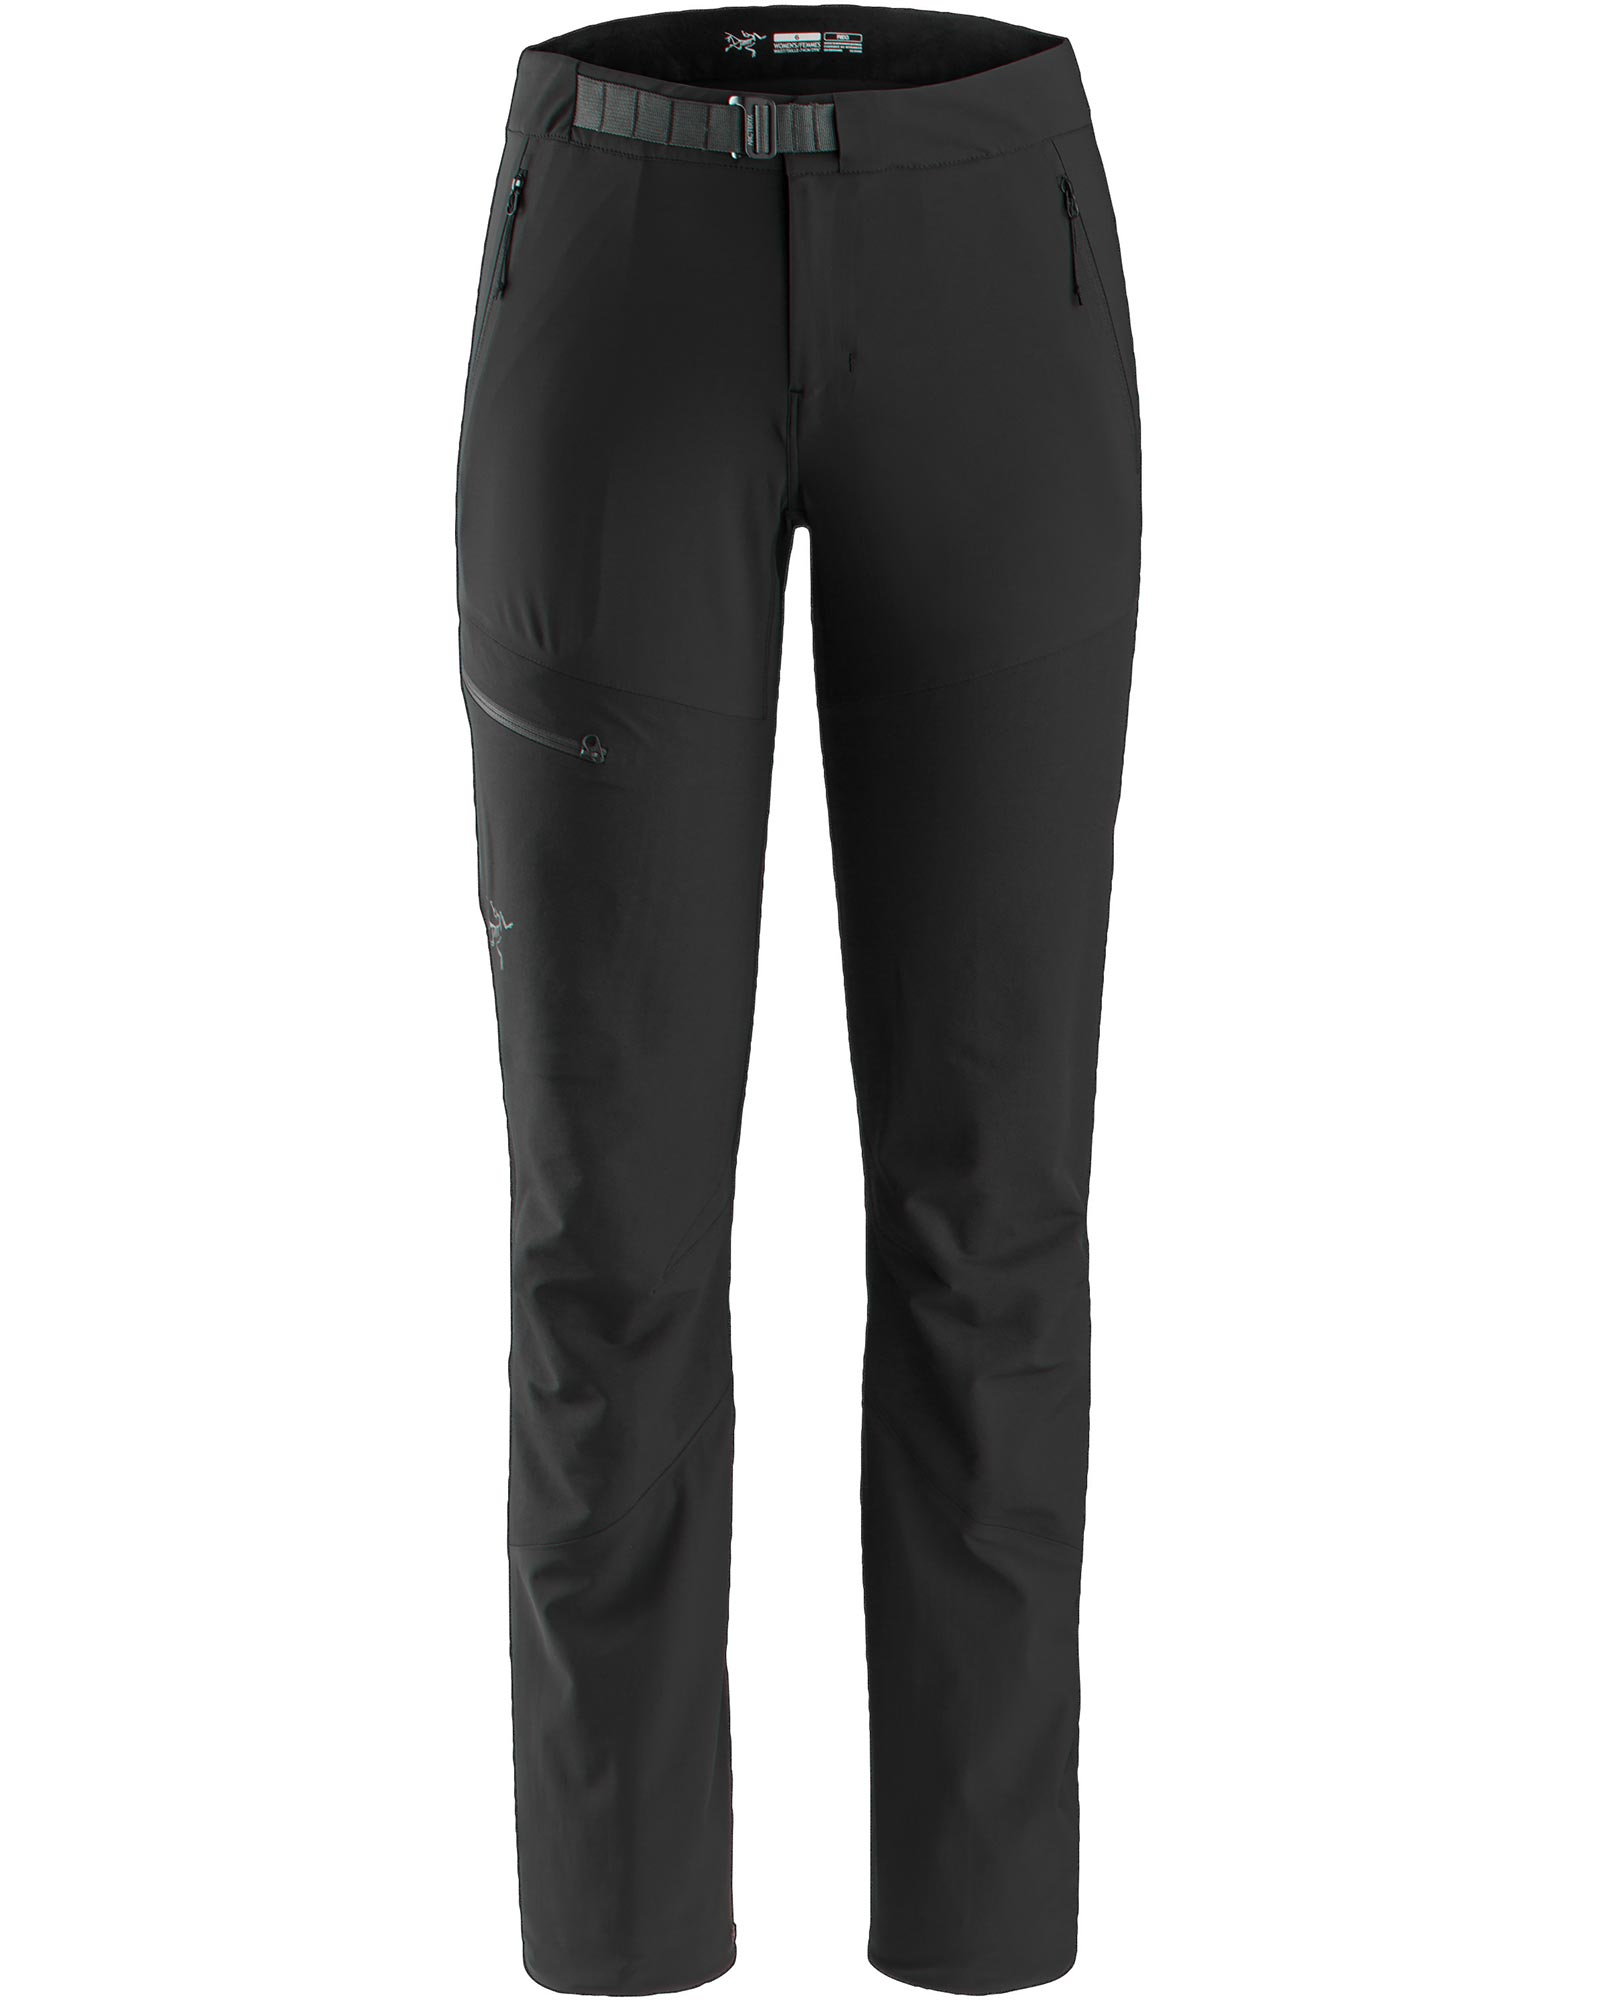 Arc'teryx Women's Sigma FL Pants Black 0